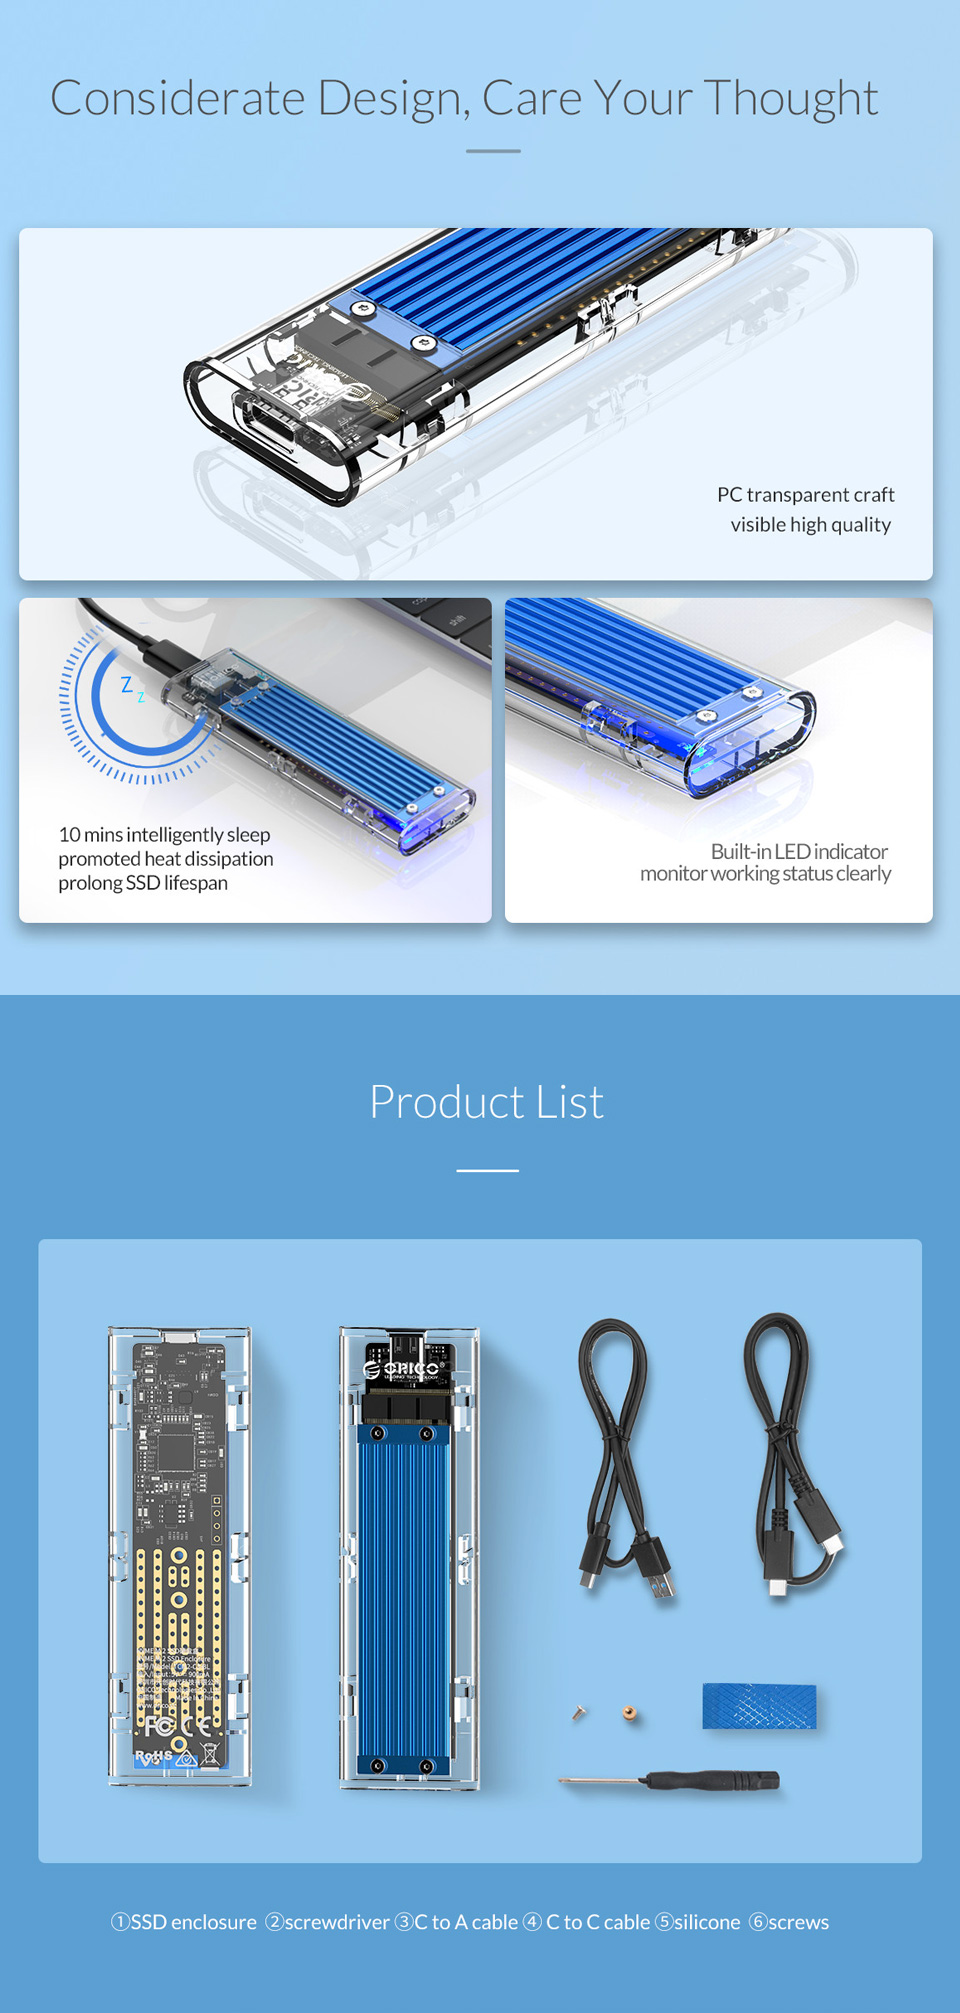 Orico USB 3.1 Type C Gen 2 M.2 Enclosure Transparent Blue features